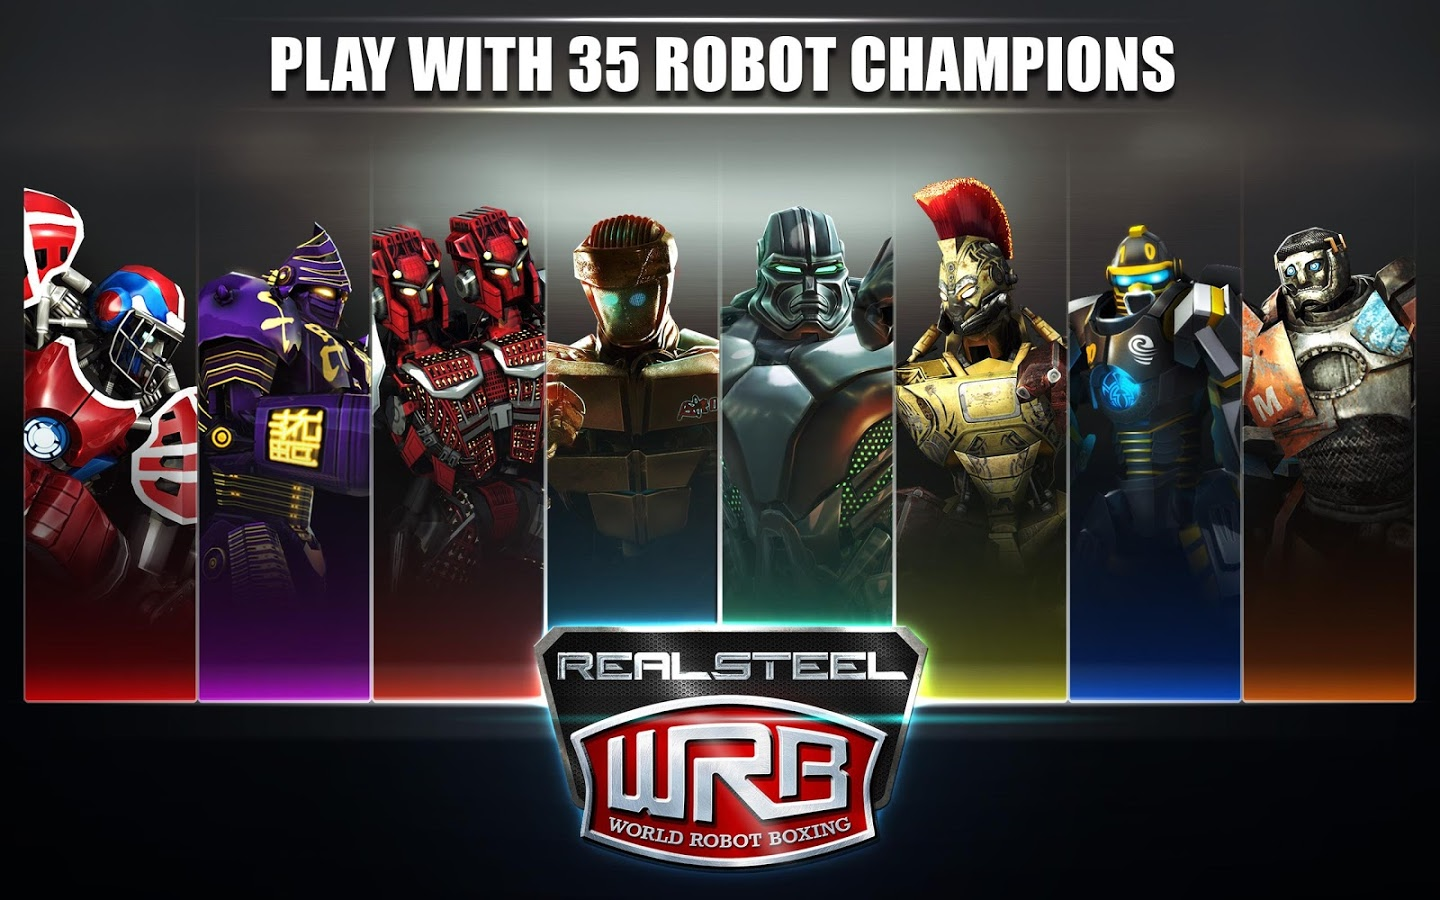 Real Steel World Robot Boxing1